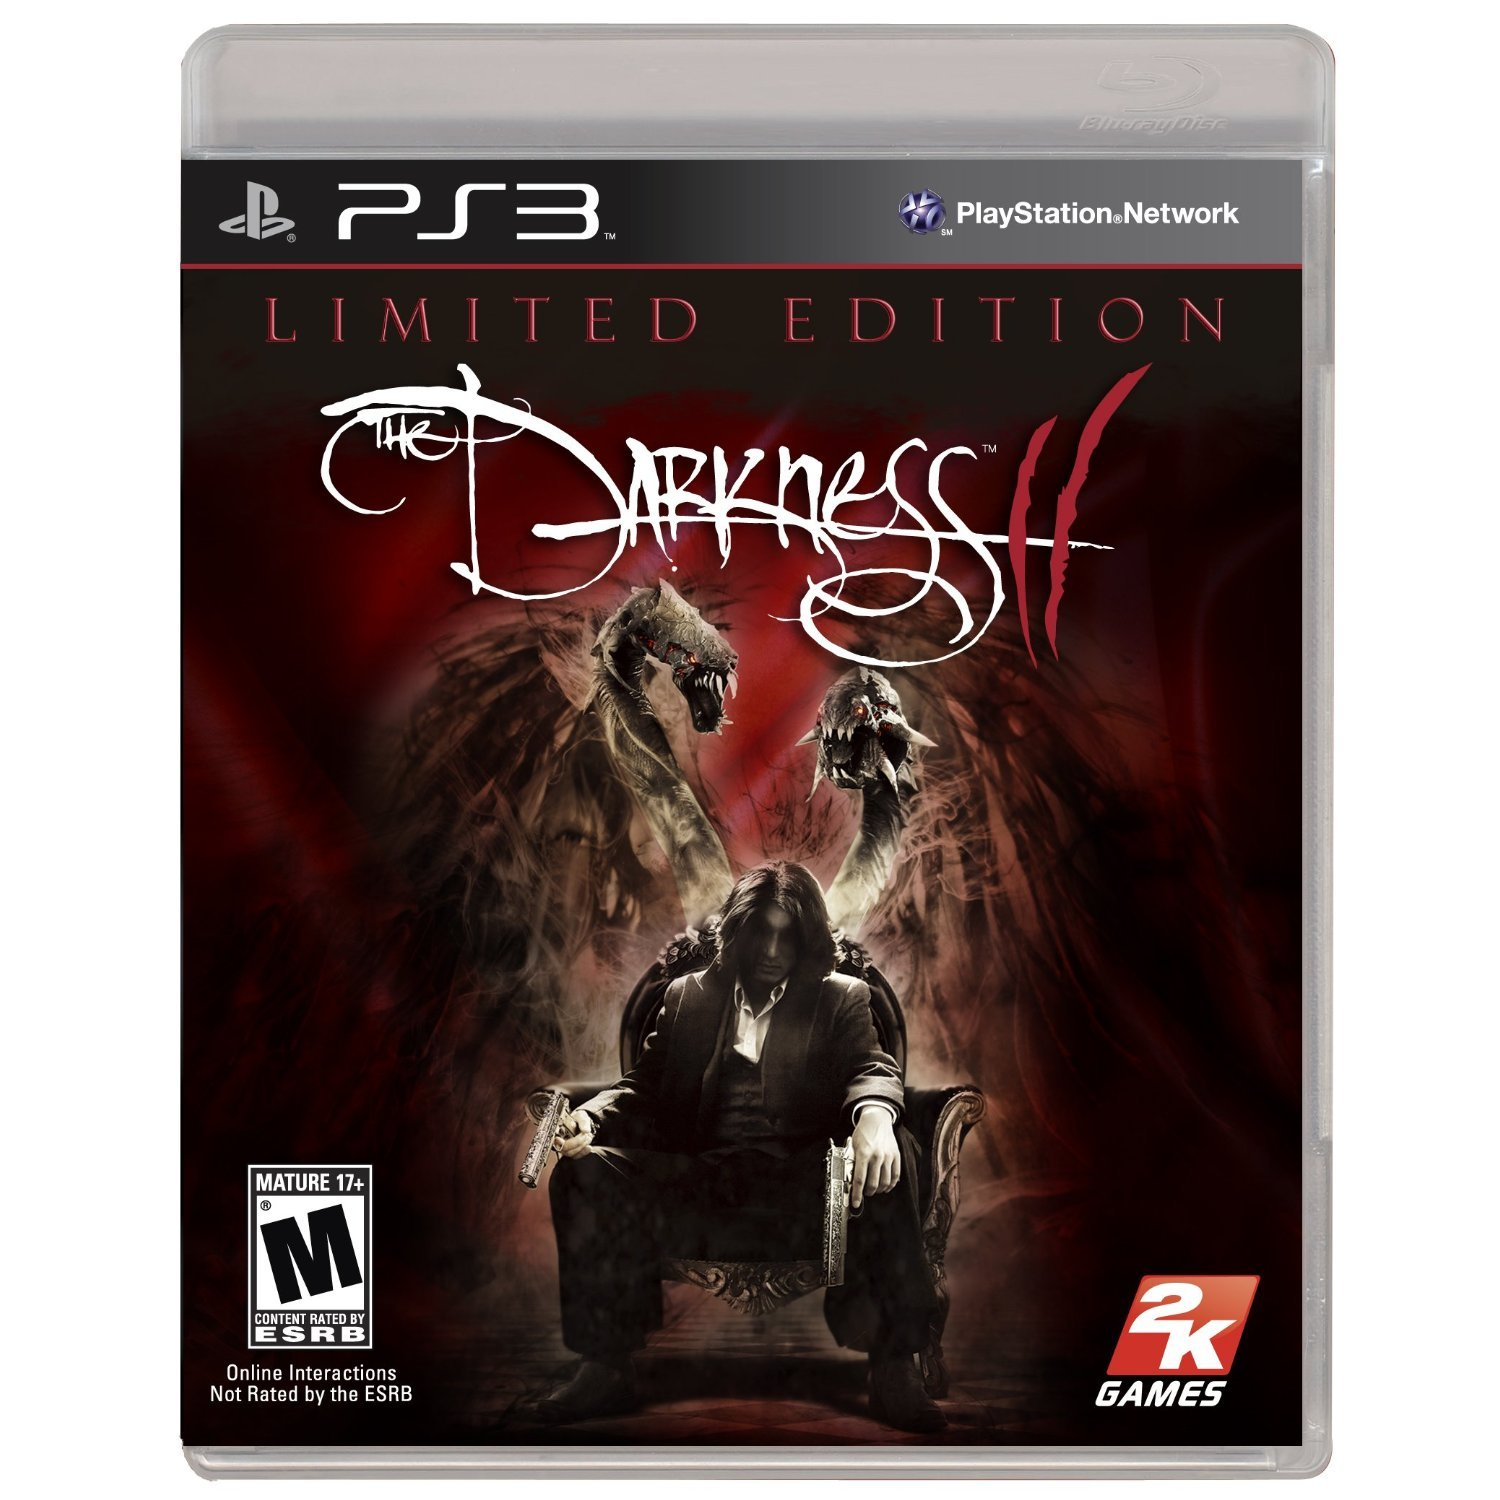 The Darkness 2 - Limited Edition PS3 [USA/CAN] anarchy reigns limited edition игра для ps3